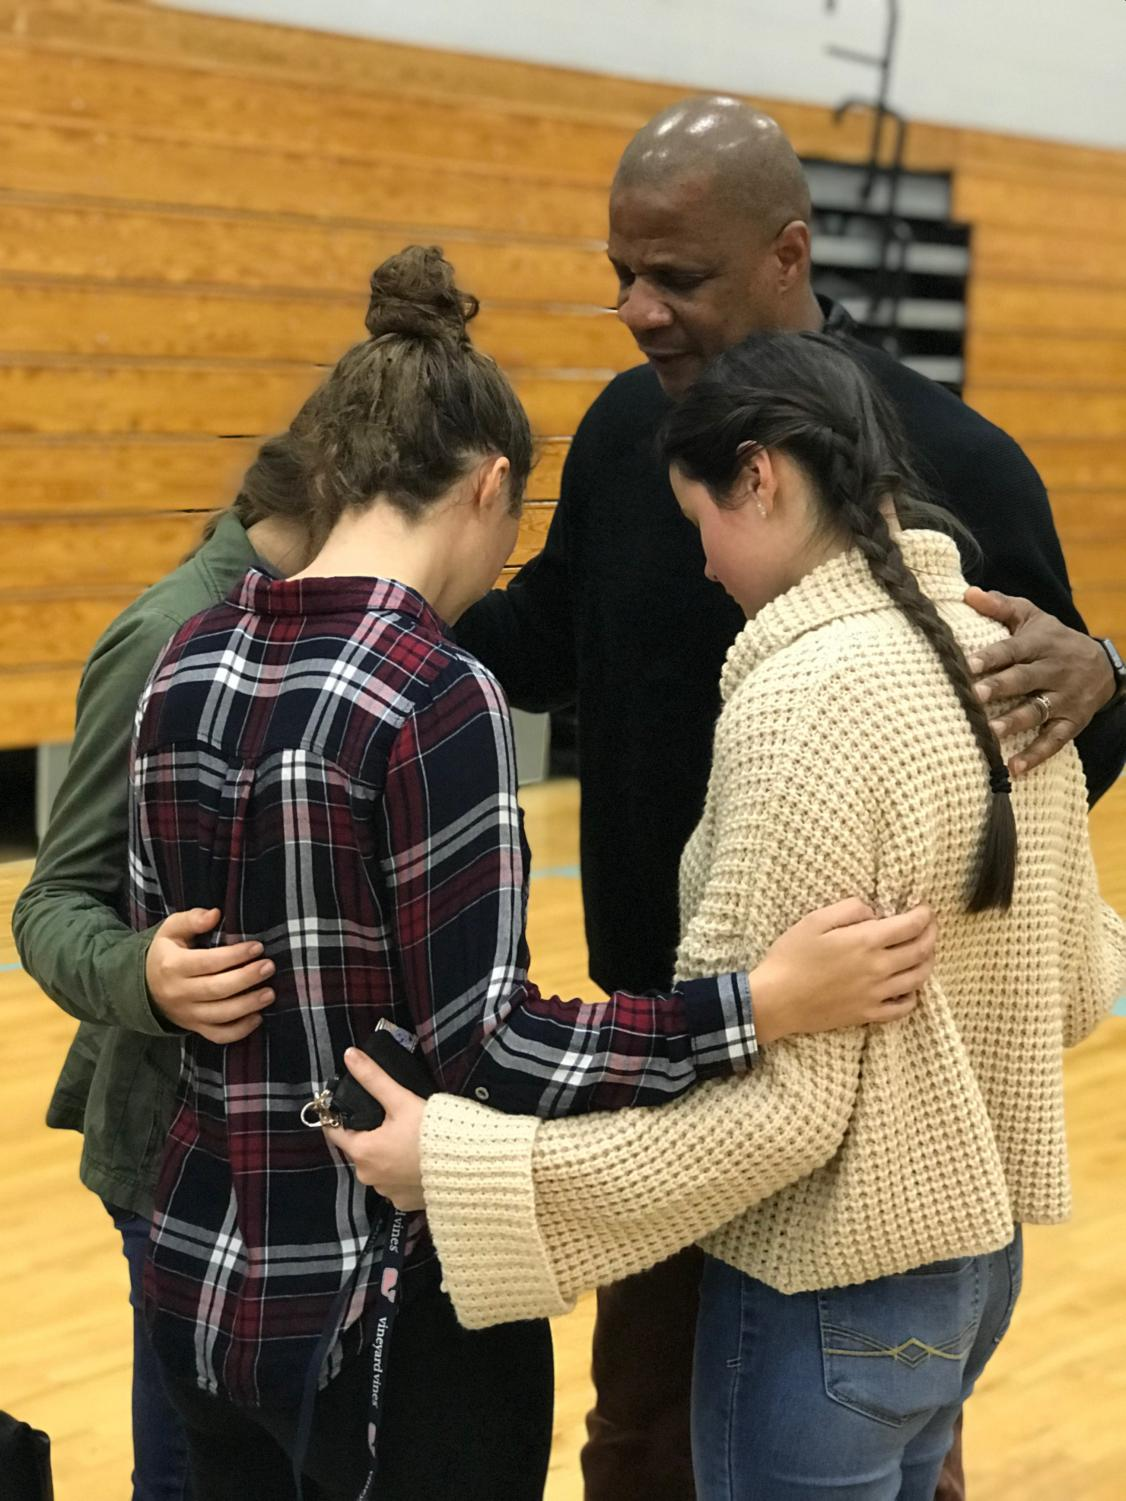 Darryl Strawberry and club members pray after the ceremony. Members who attended got to listen to Strawberry's presentation as well as has individual time with him.